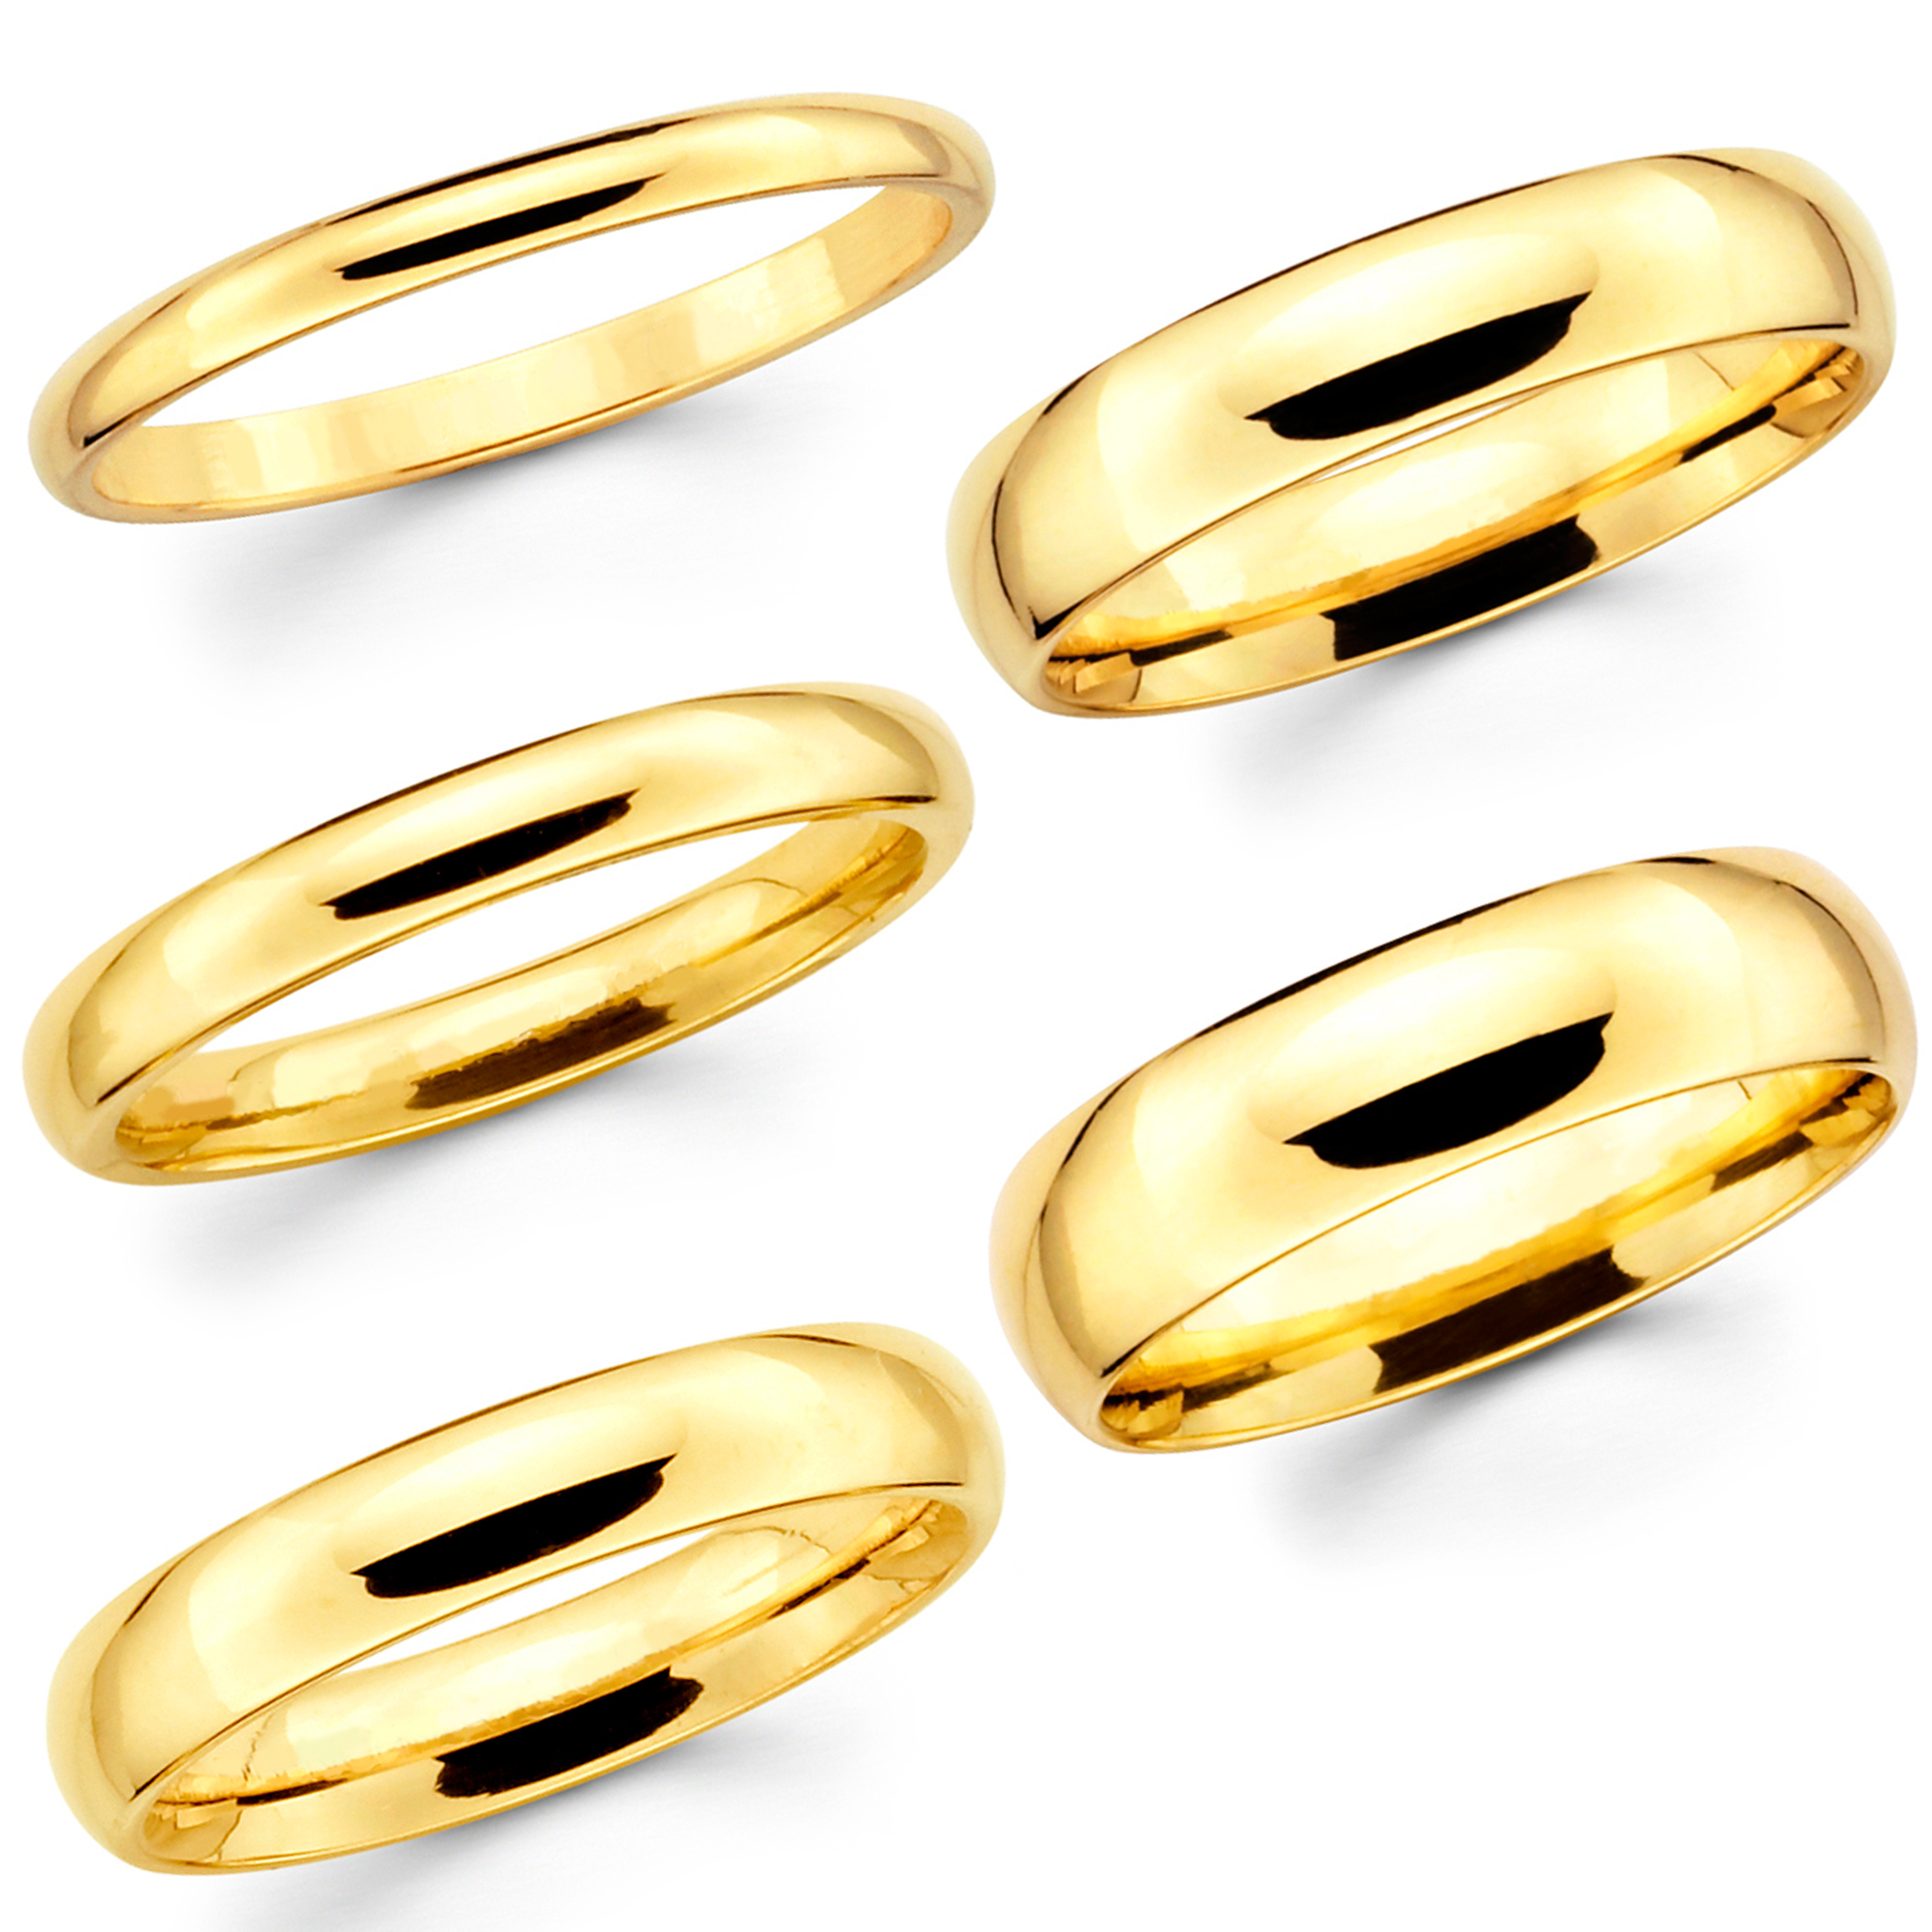 wedding ring rings cordingley rebecca products mens solid s handmade square gold men band